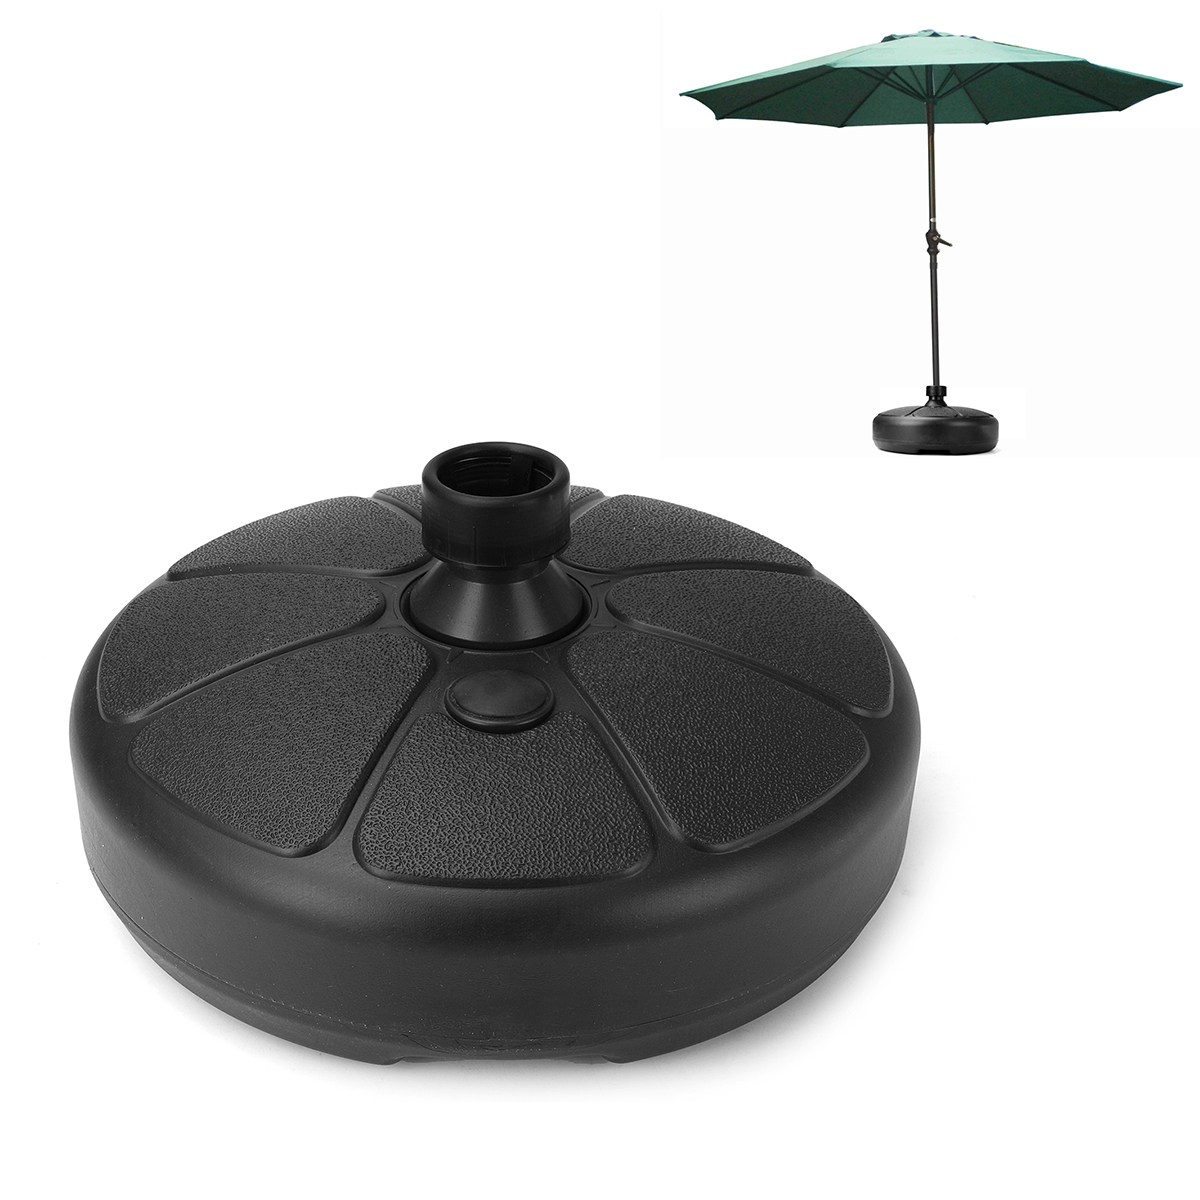 Durable Outdoor Parasol Garden Umbrella Base Stand Round Patio Umbrella Bases Foundation Billboard Holder Sun Shelter Accessory umbrella stand outdoor furniture modern umbrellas stand sunshade stall umbrella beach garden umbrella bases